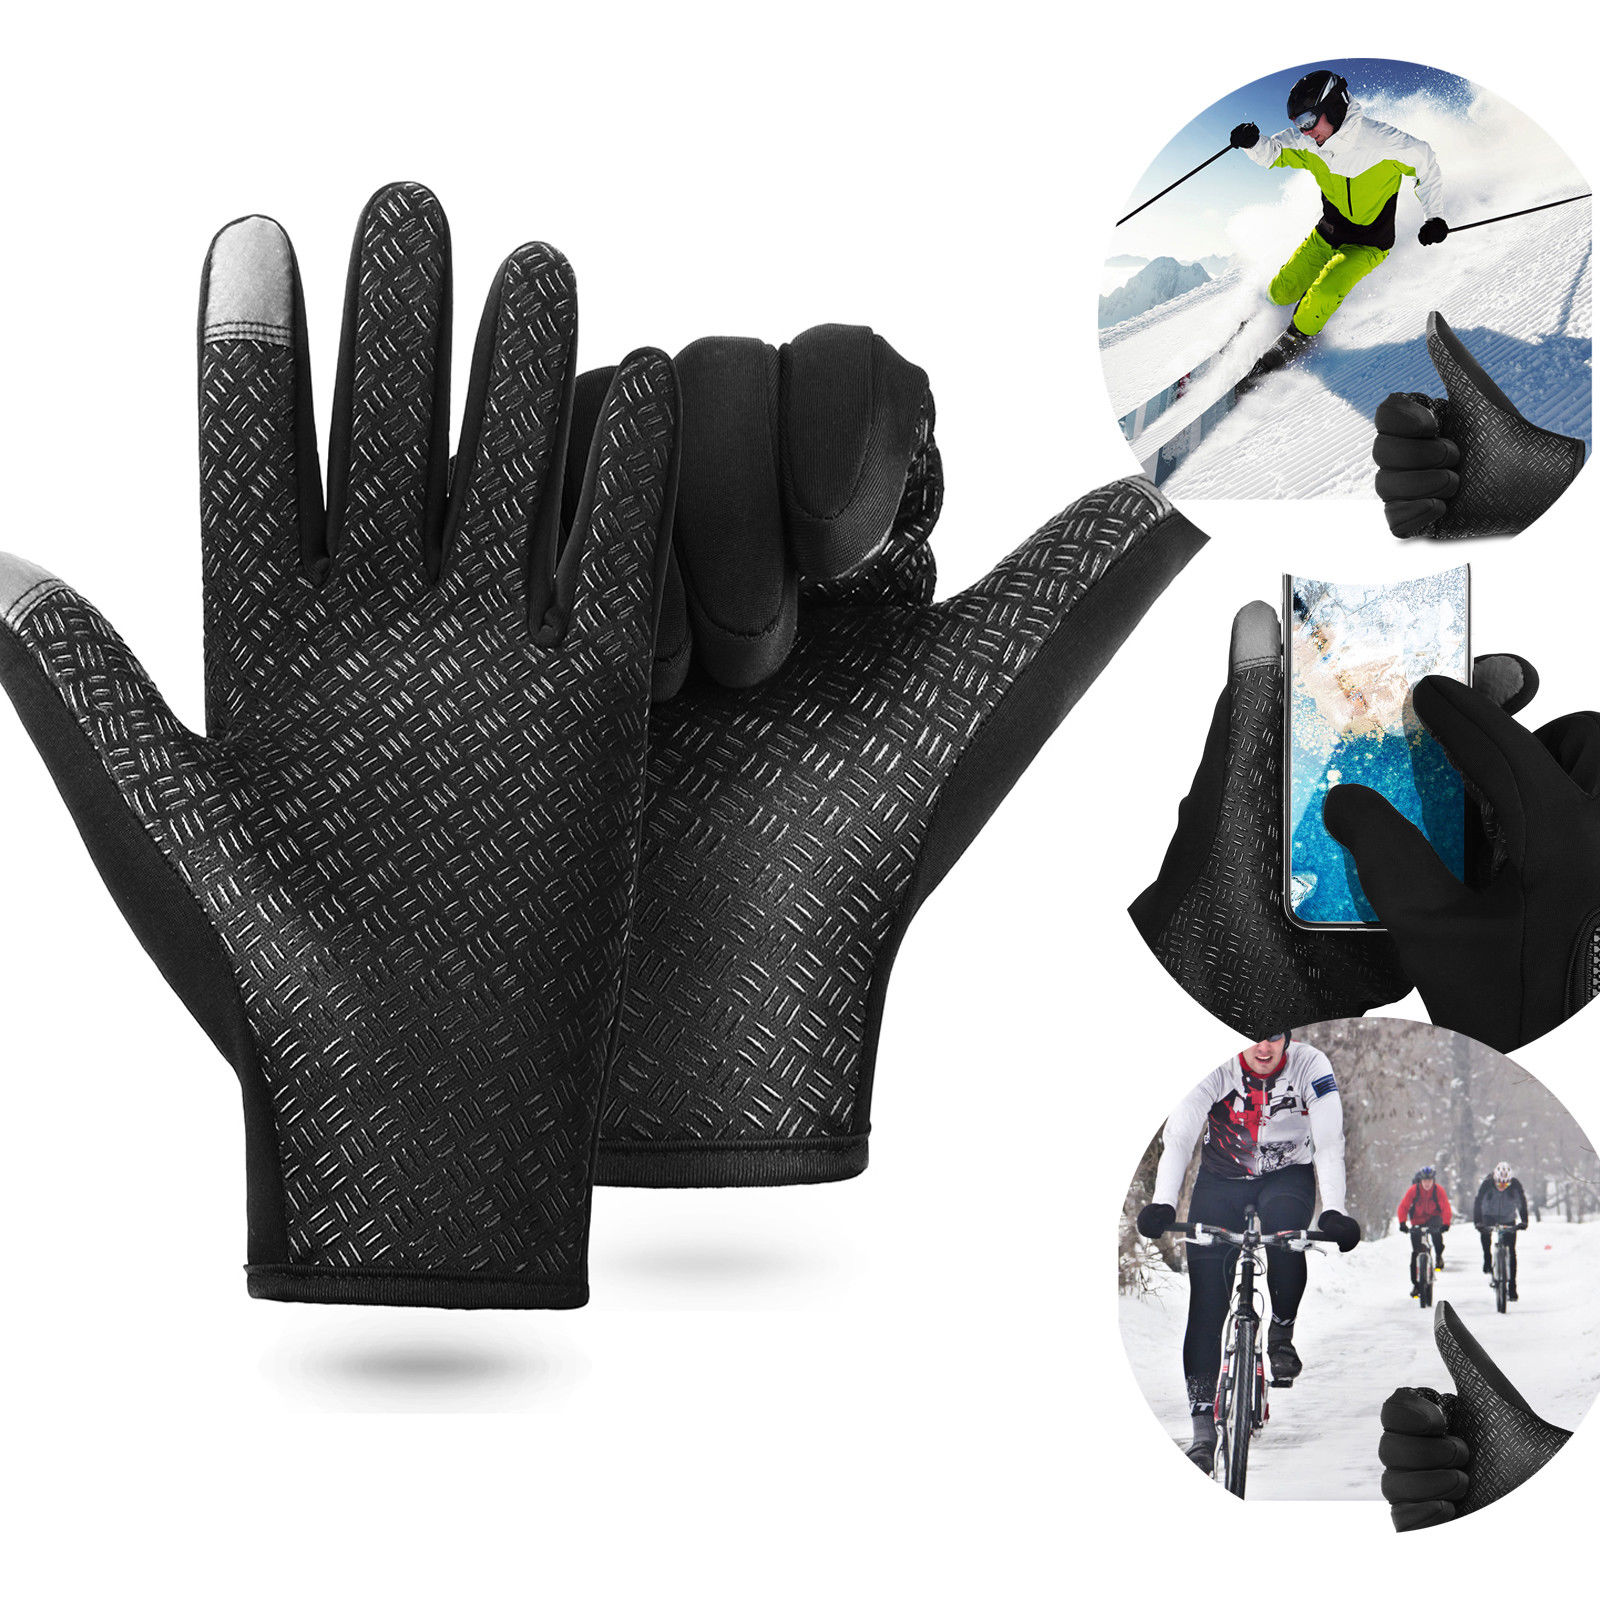 2-Tip Women Men Winter Windproof Waterproof Warm Touch Screen Gloves Outdoor Sports Cycling Driving - (Black,XL,1 Pair)